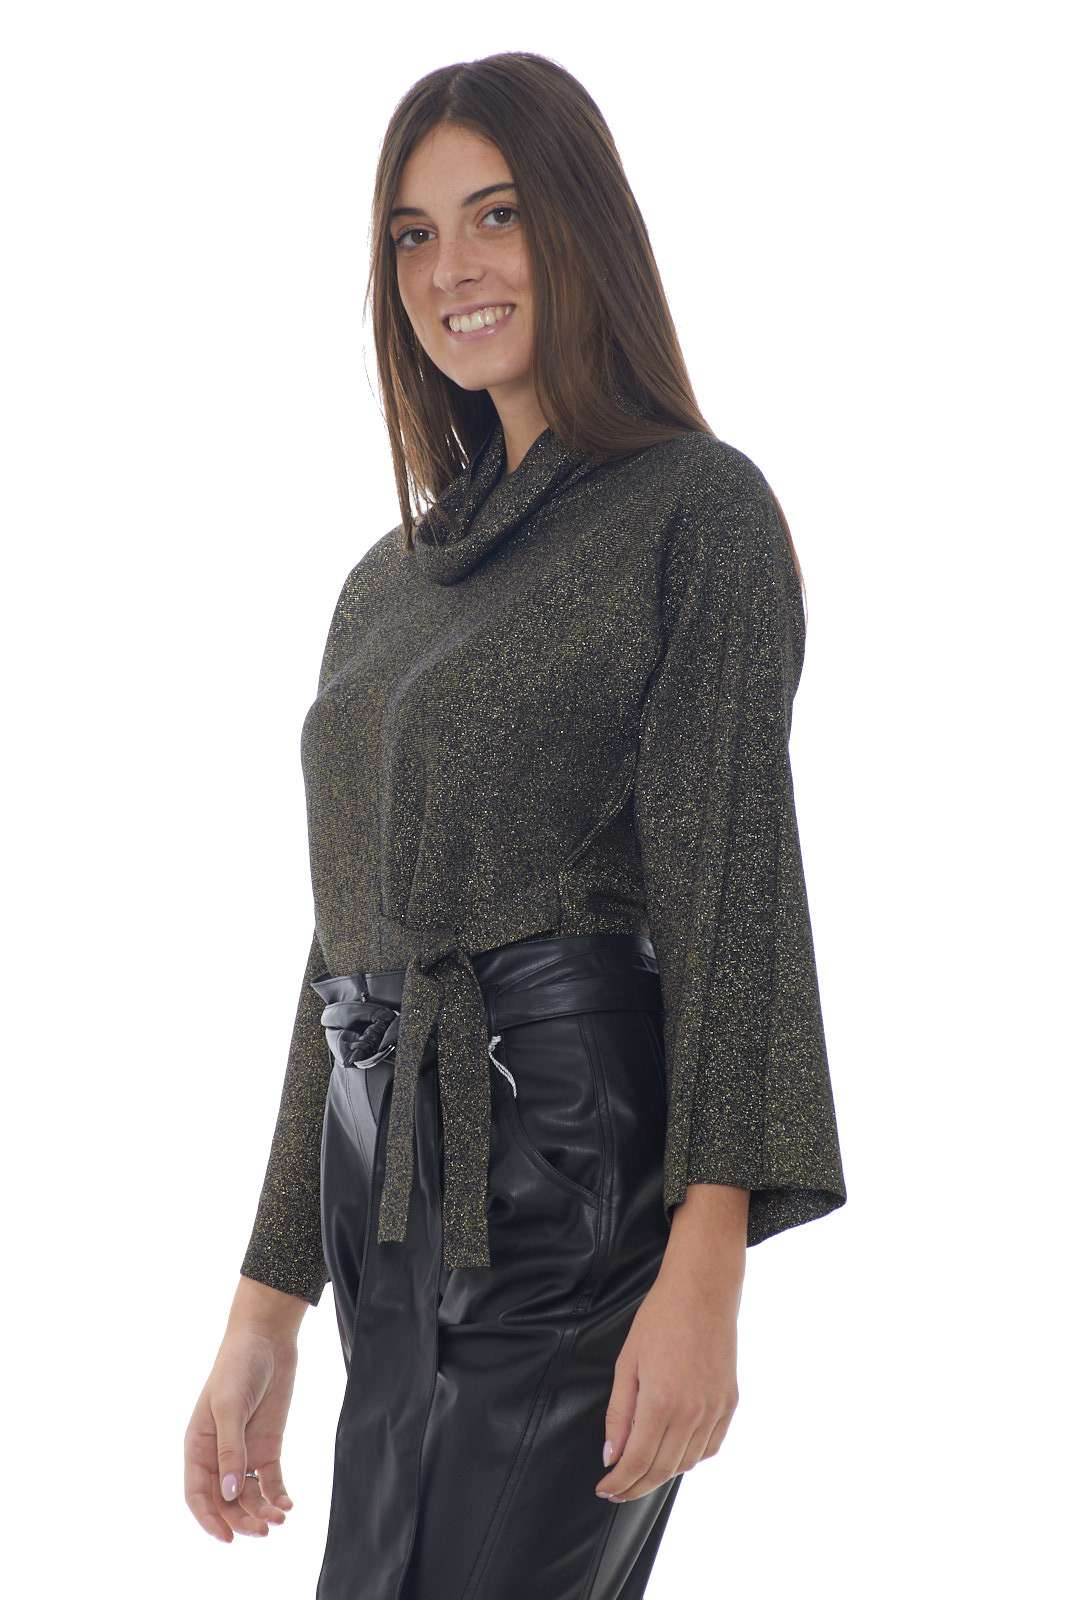 https://www.parmax.com/media/catalog/product/a/i/AI-outlet_parmax-maglia-donna-Patrizia-Pepe-8m0881-B.jpg